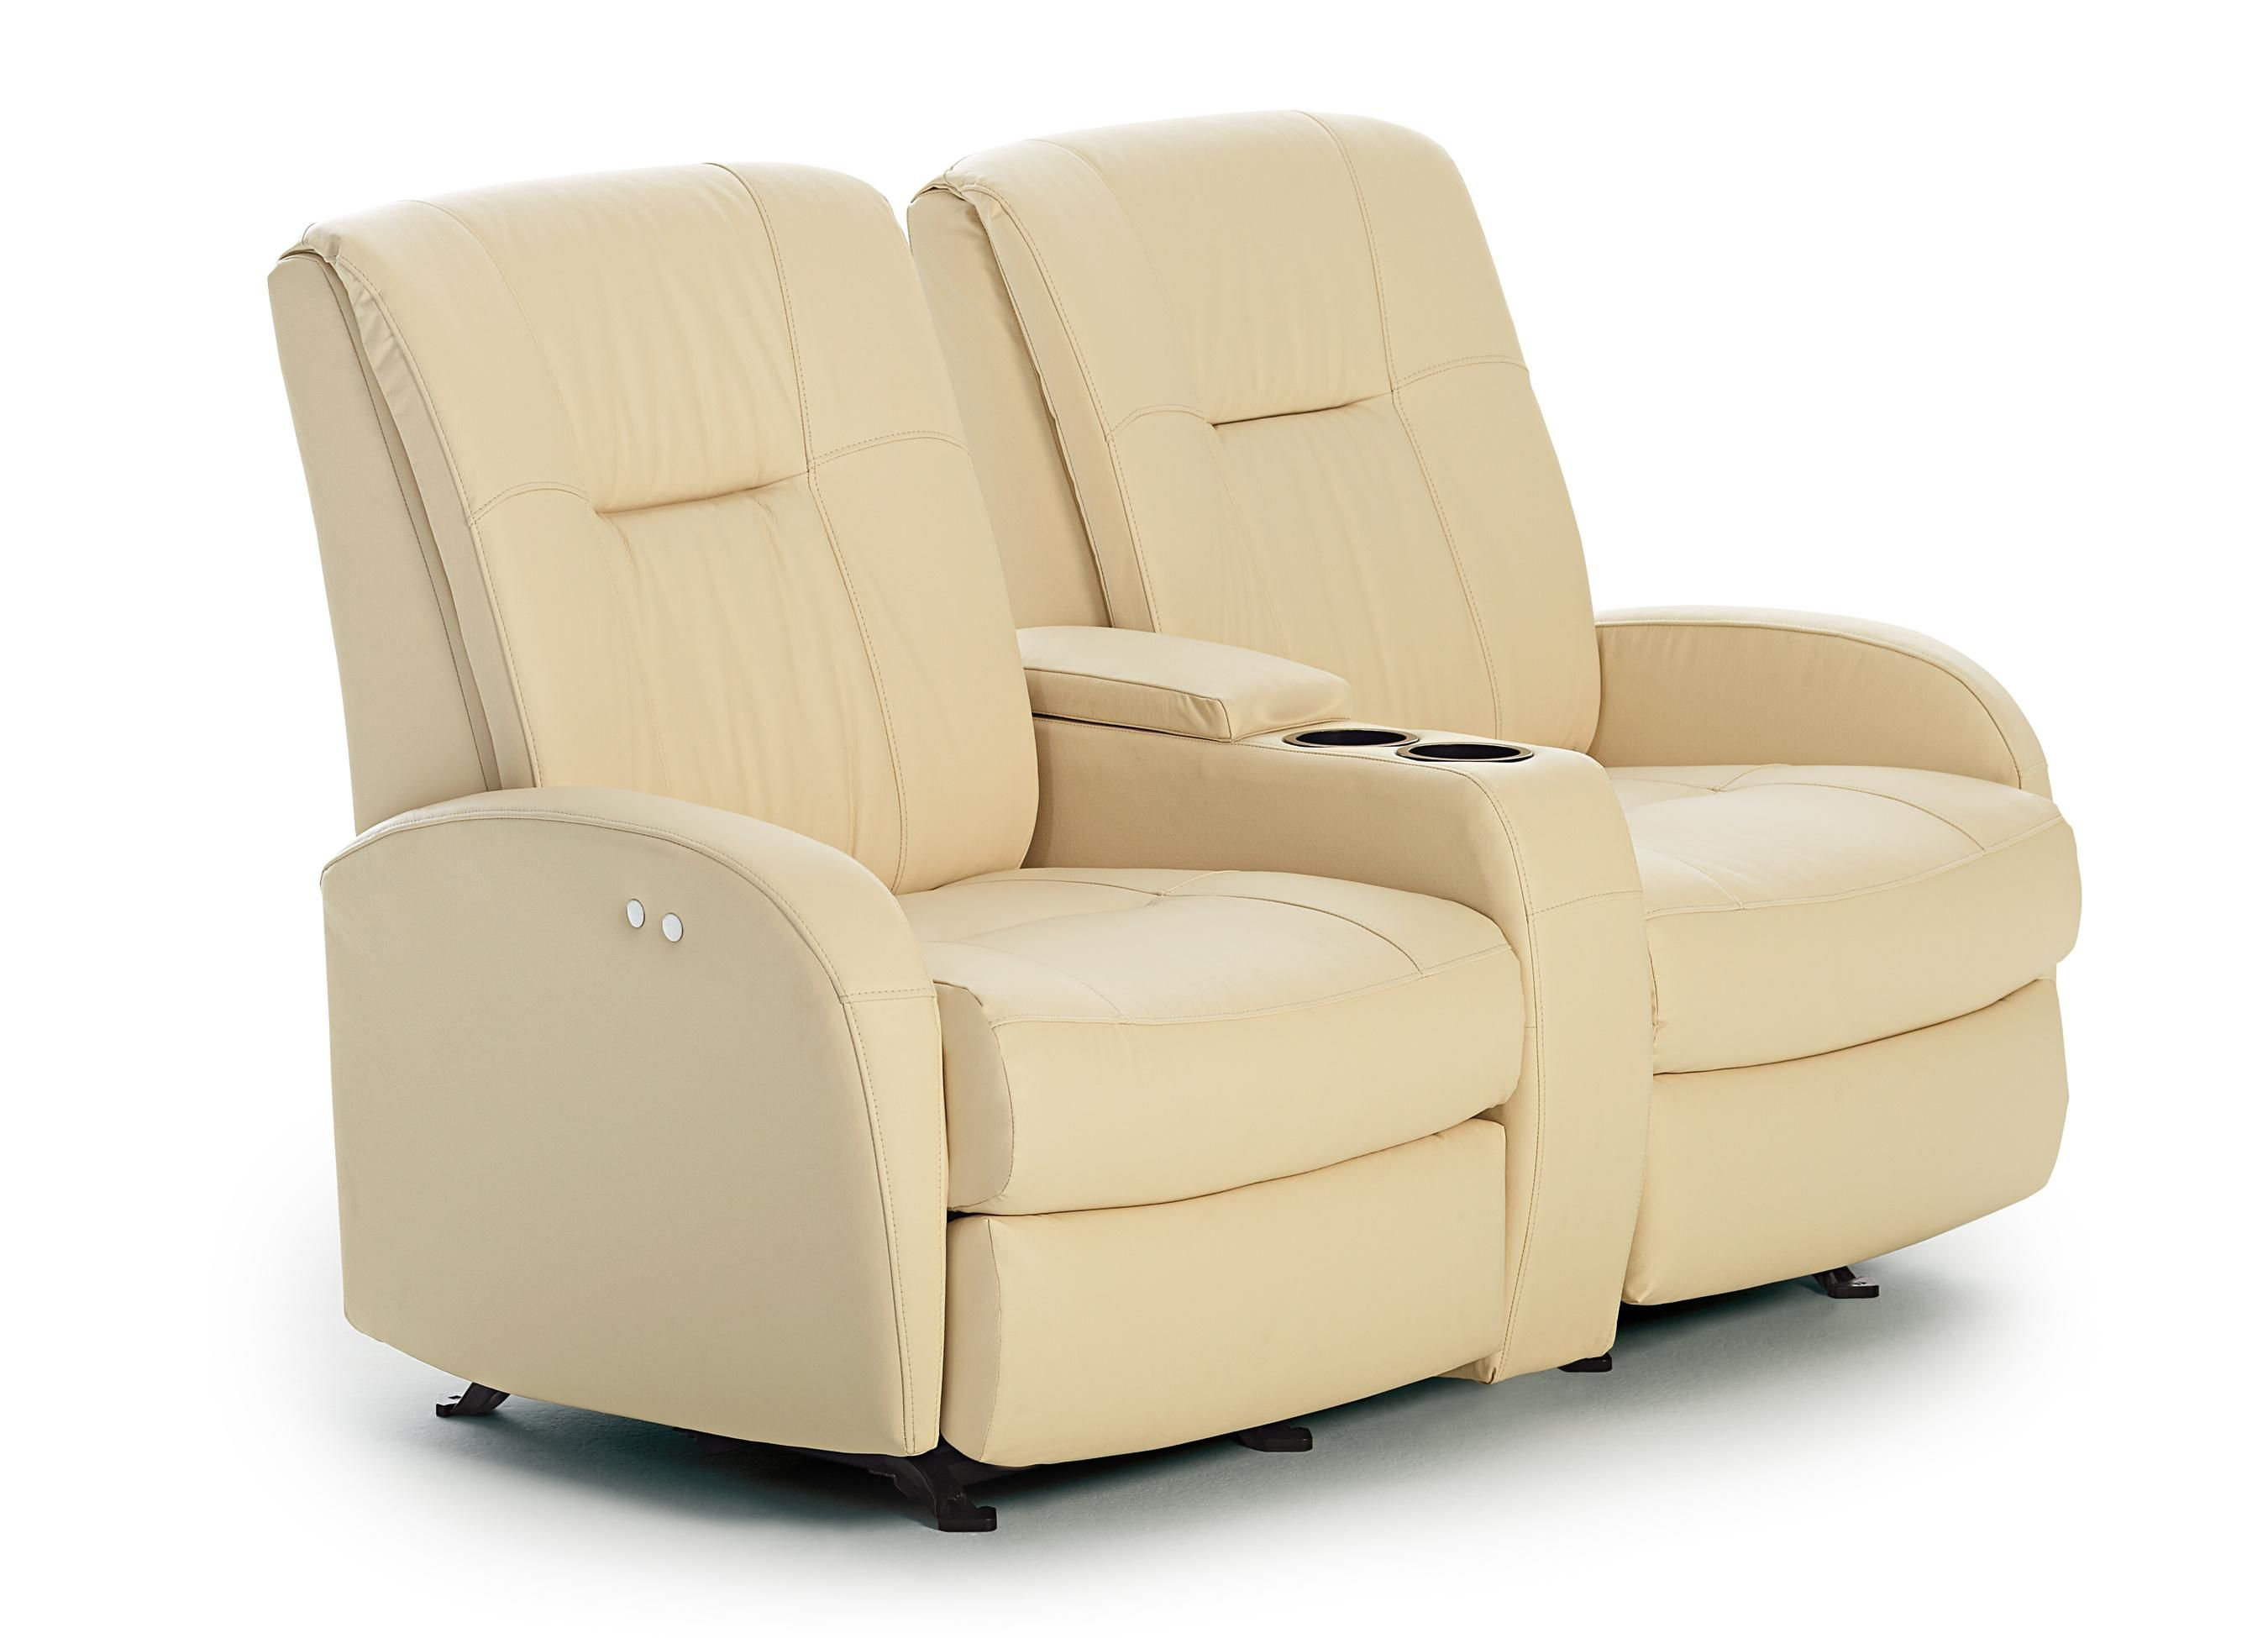 Comfortable Recliner Couches remarkable reclining loveseat with console: ruddick contemporary